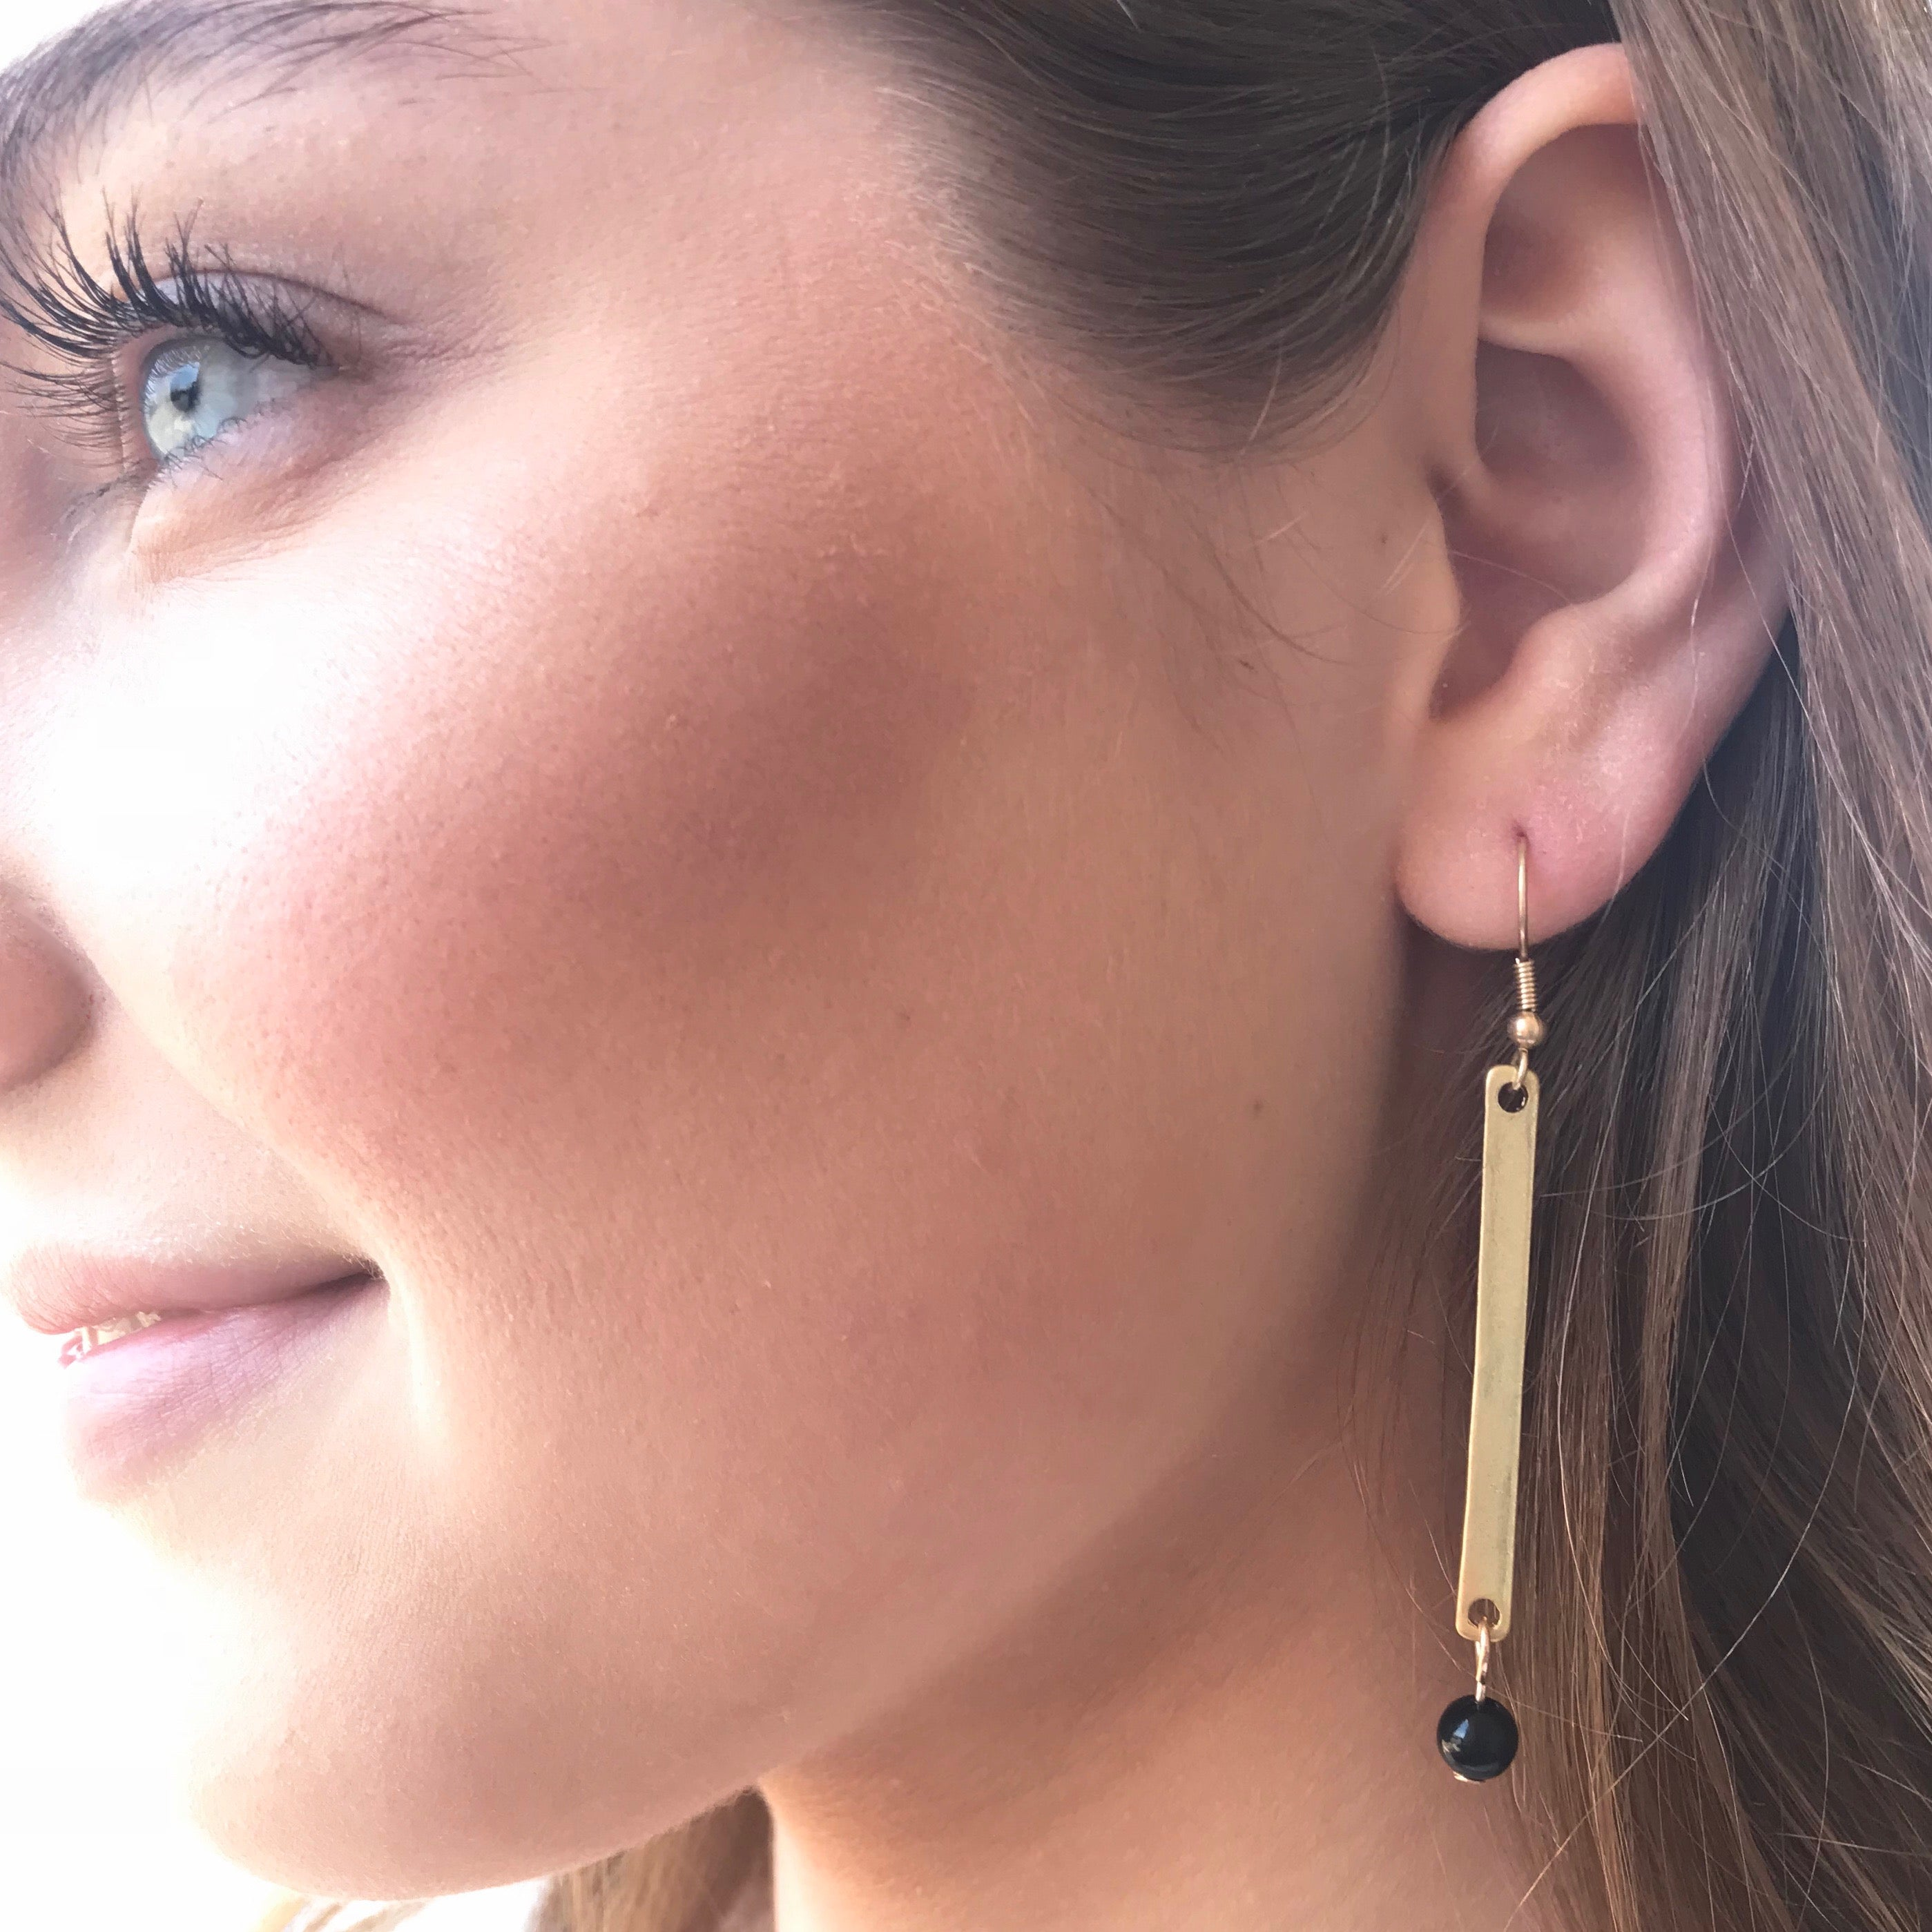 Pretty Simple - Gold Bar With Black Bead Earring